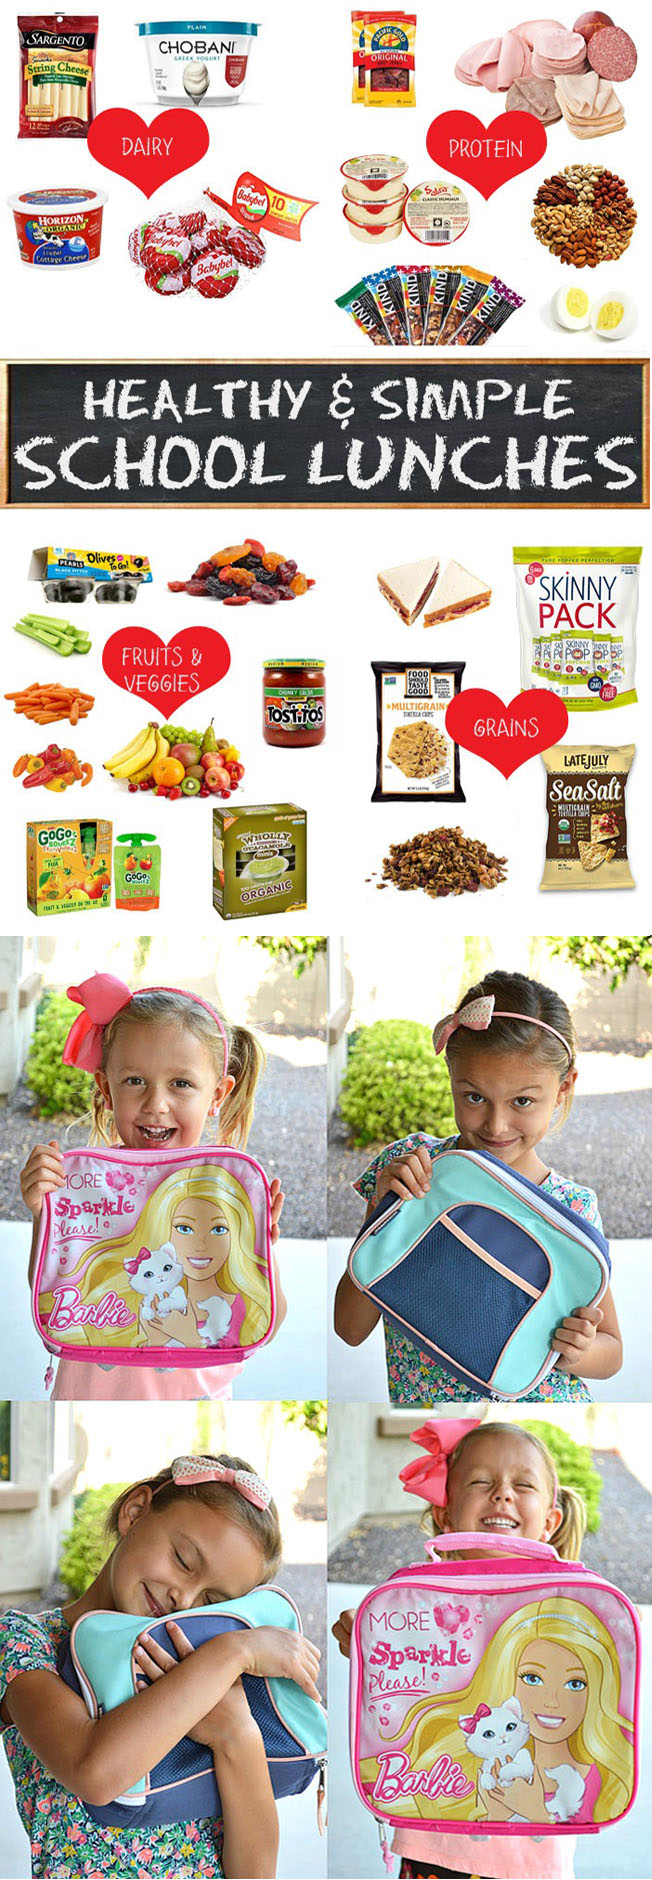 packing healthy school lunches for kids